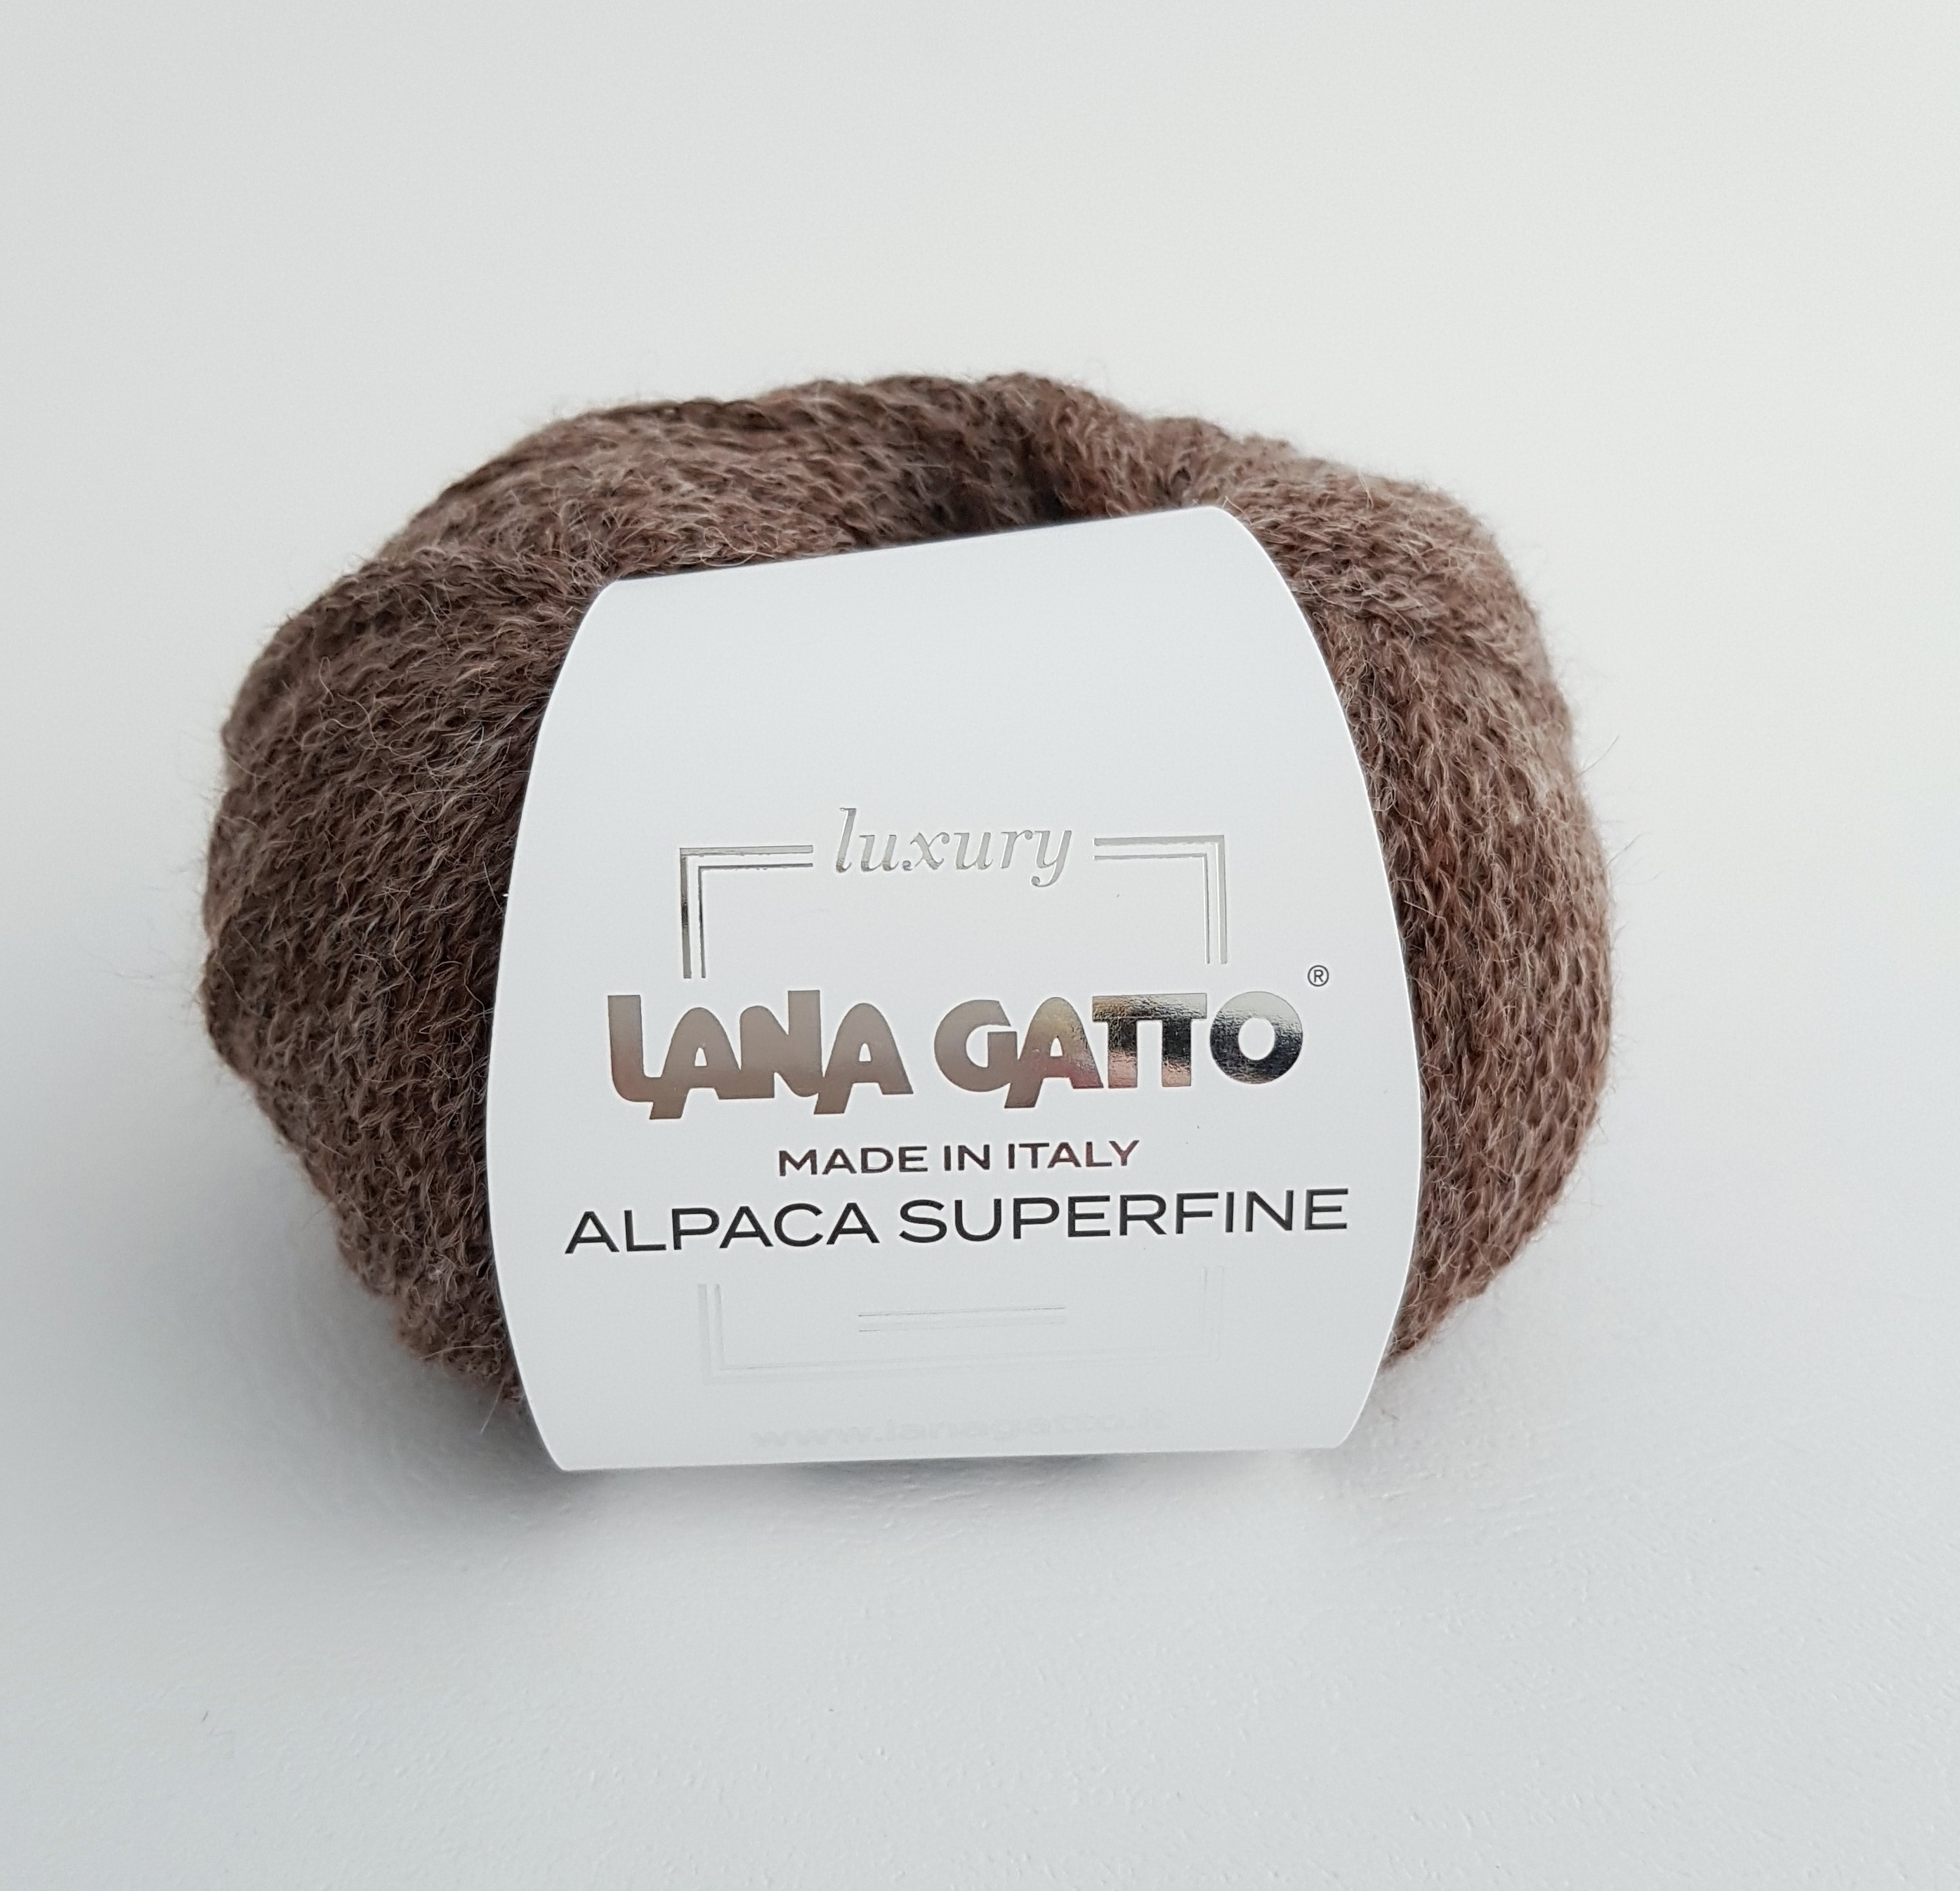 ПРЯЖА LANA GATTO ALPACA SUPERFINE (93% АЛЬПАКА, 7% НЕЙЛОН) #08479 TORTORA